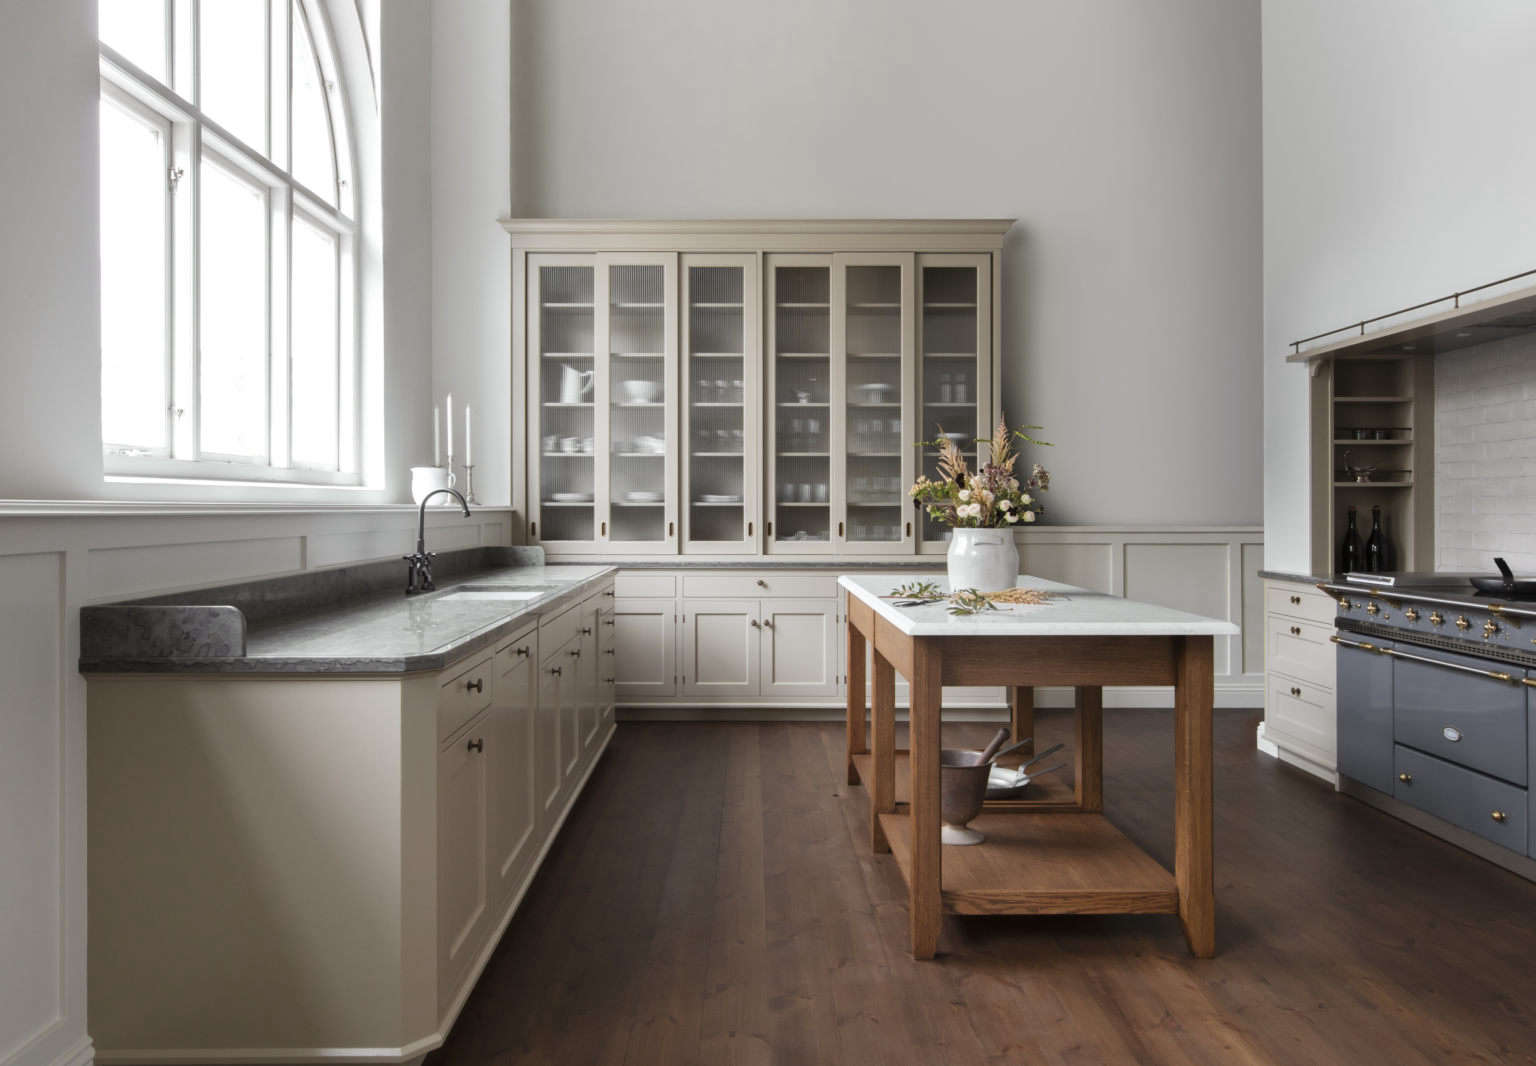 Kitchen of the Week: A Hushed Old-World Swedish Design by Kvänum